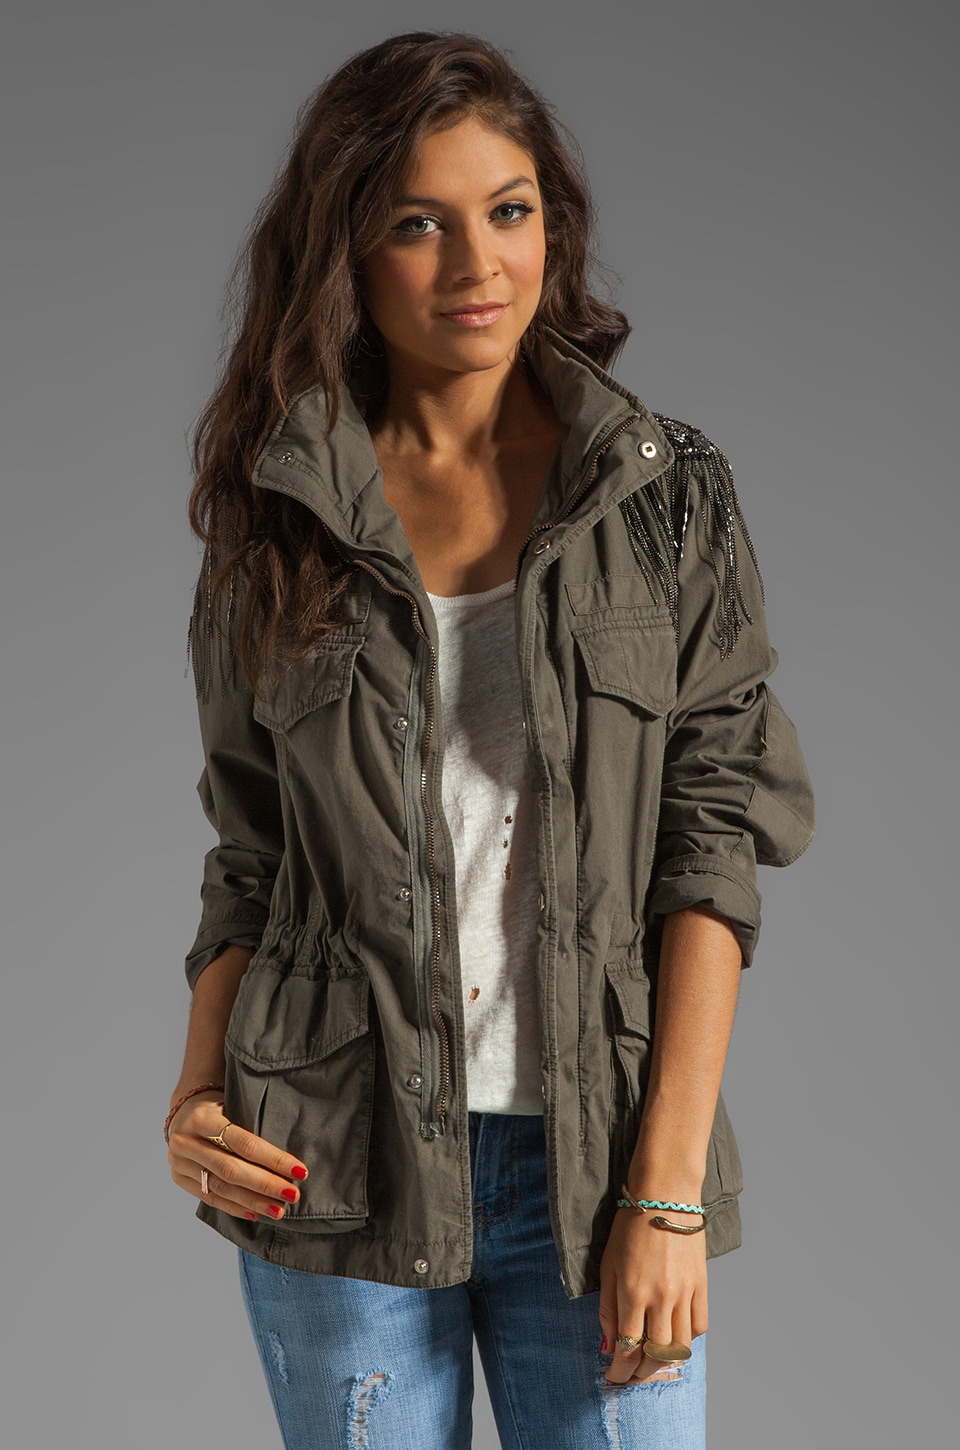 Haute Hippie Haute Hippie Military Anorak Jacket in Military